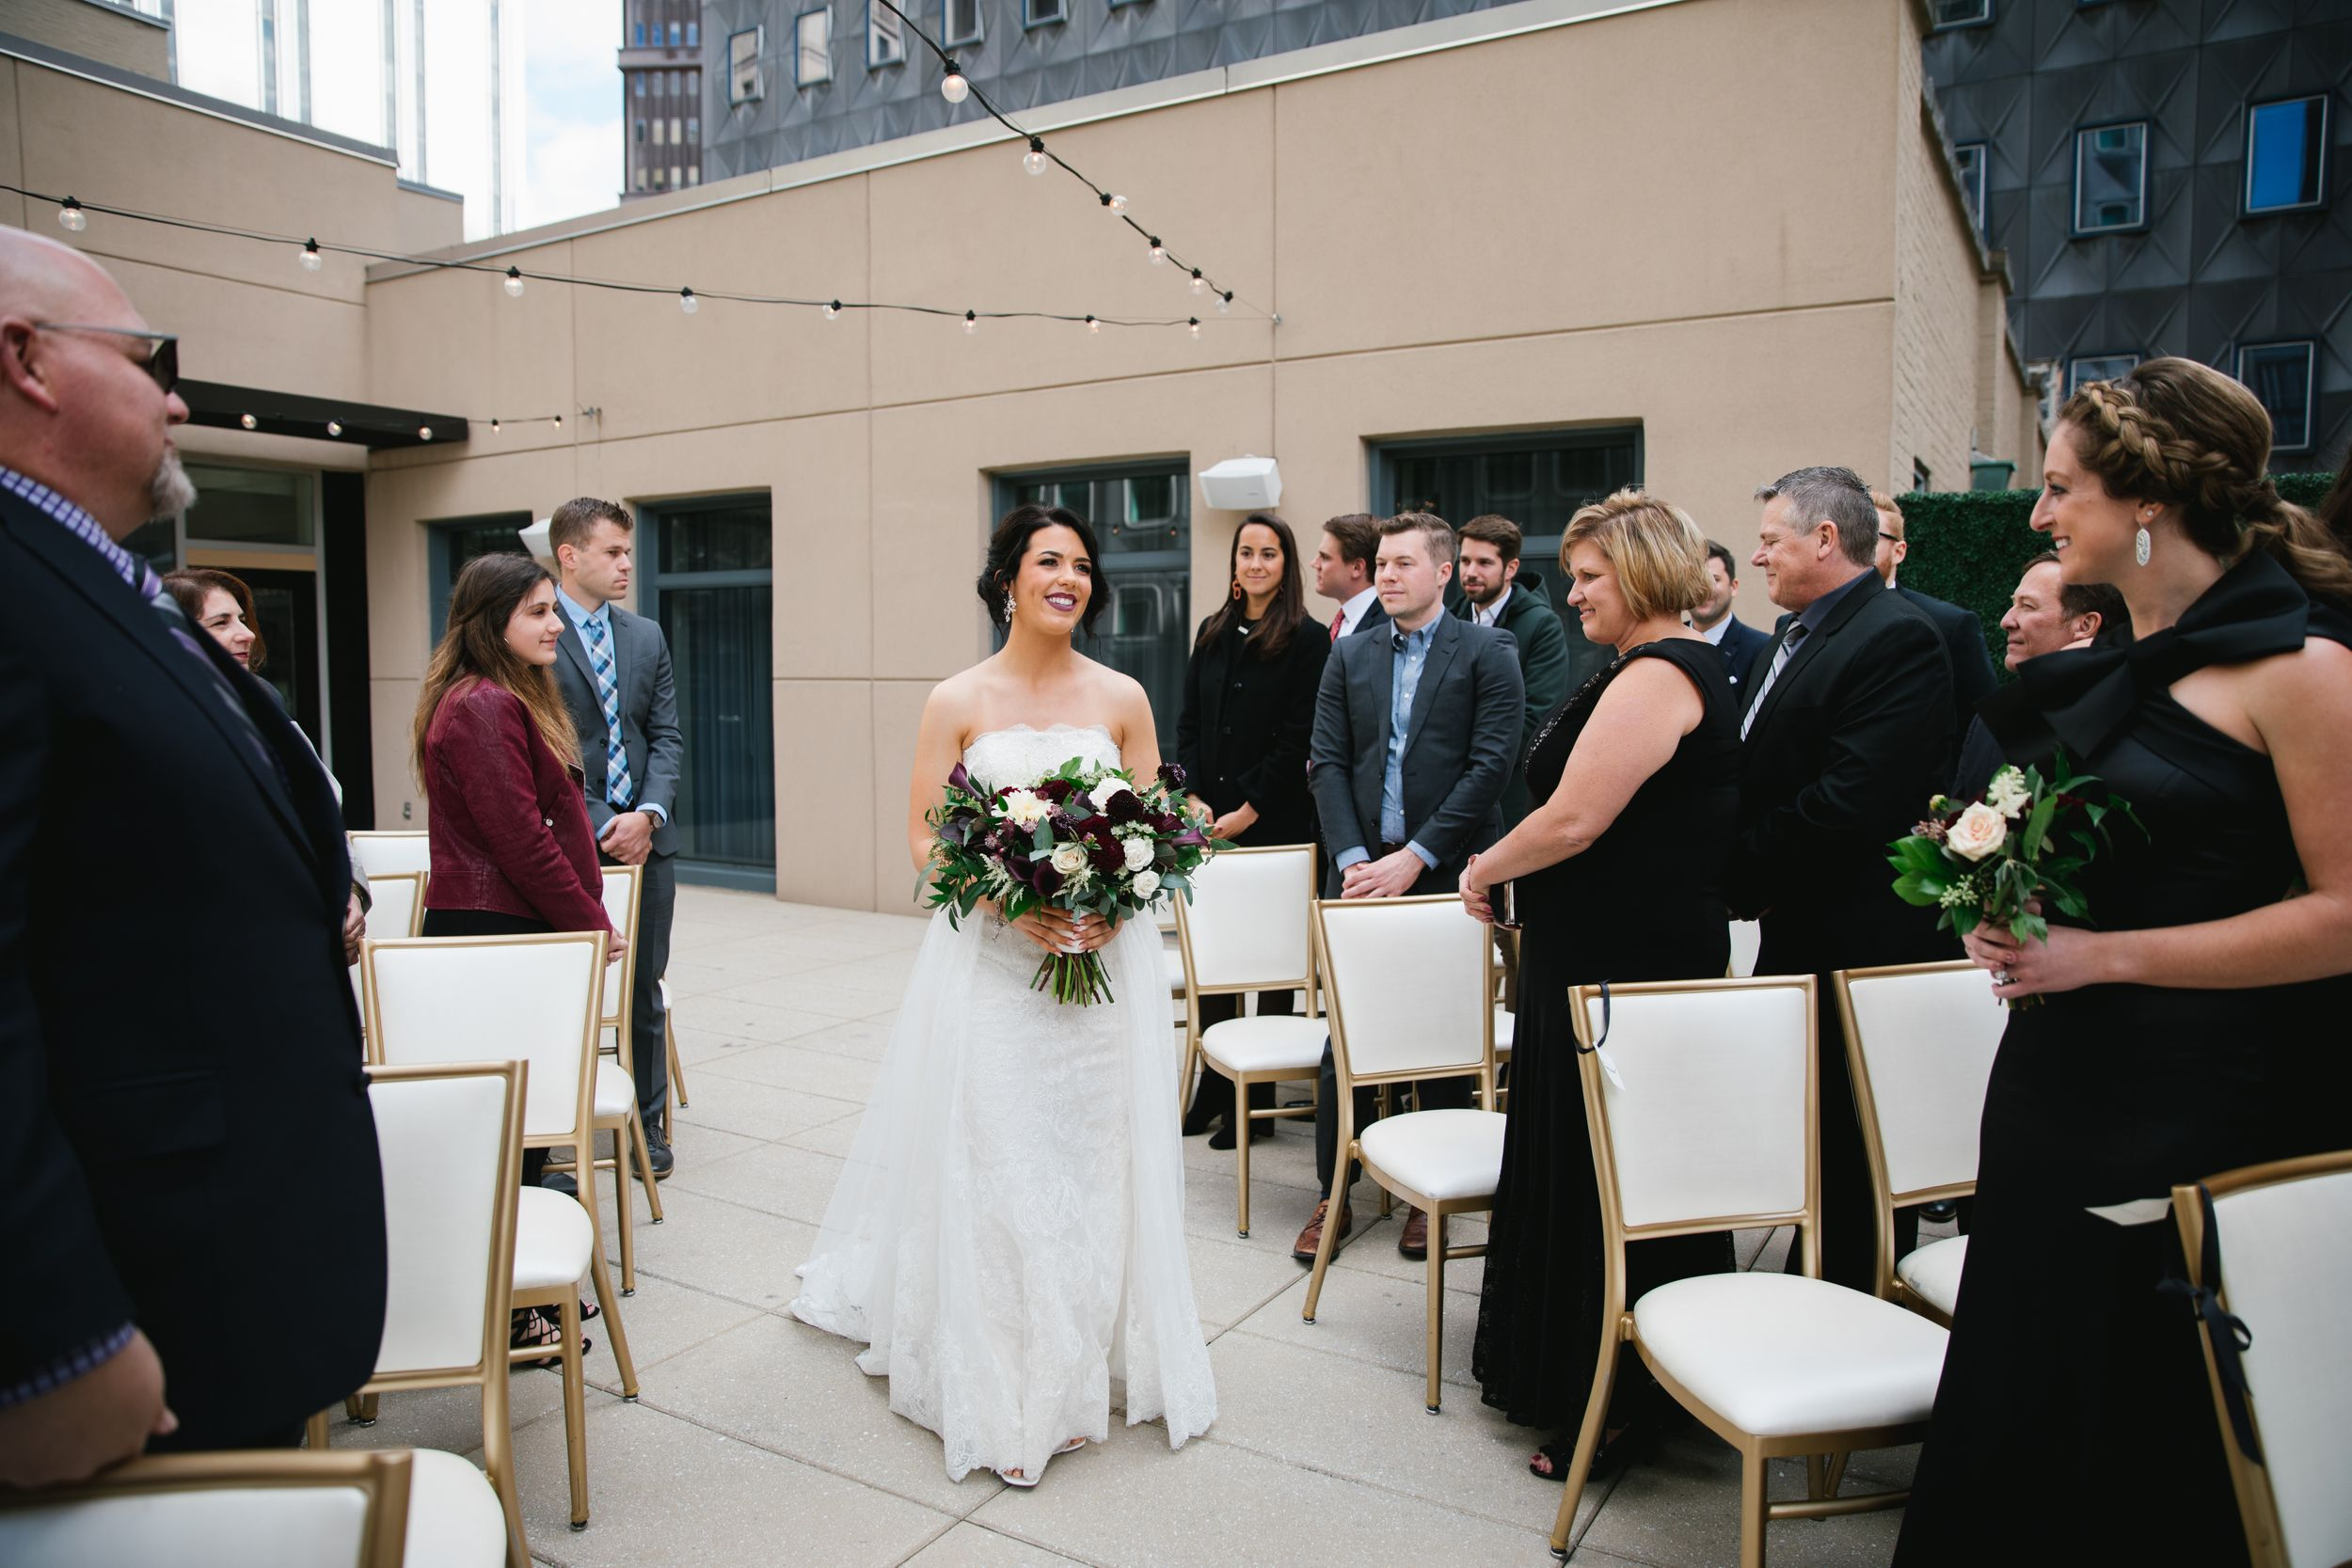 bride walking down aisle smiling with friends and family looking on